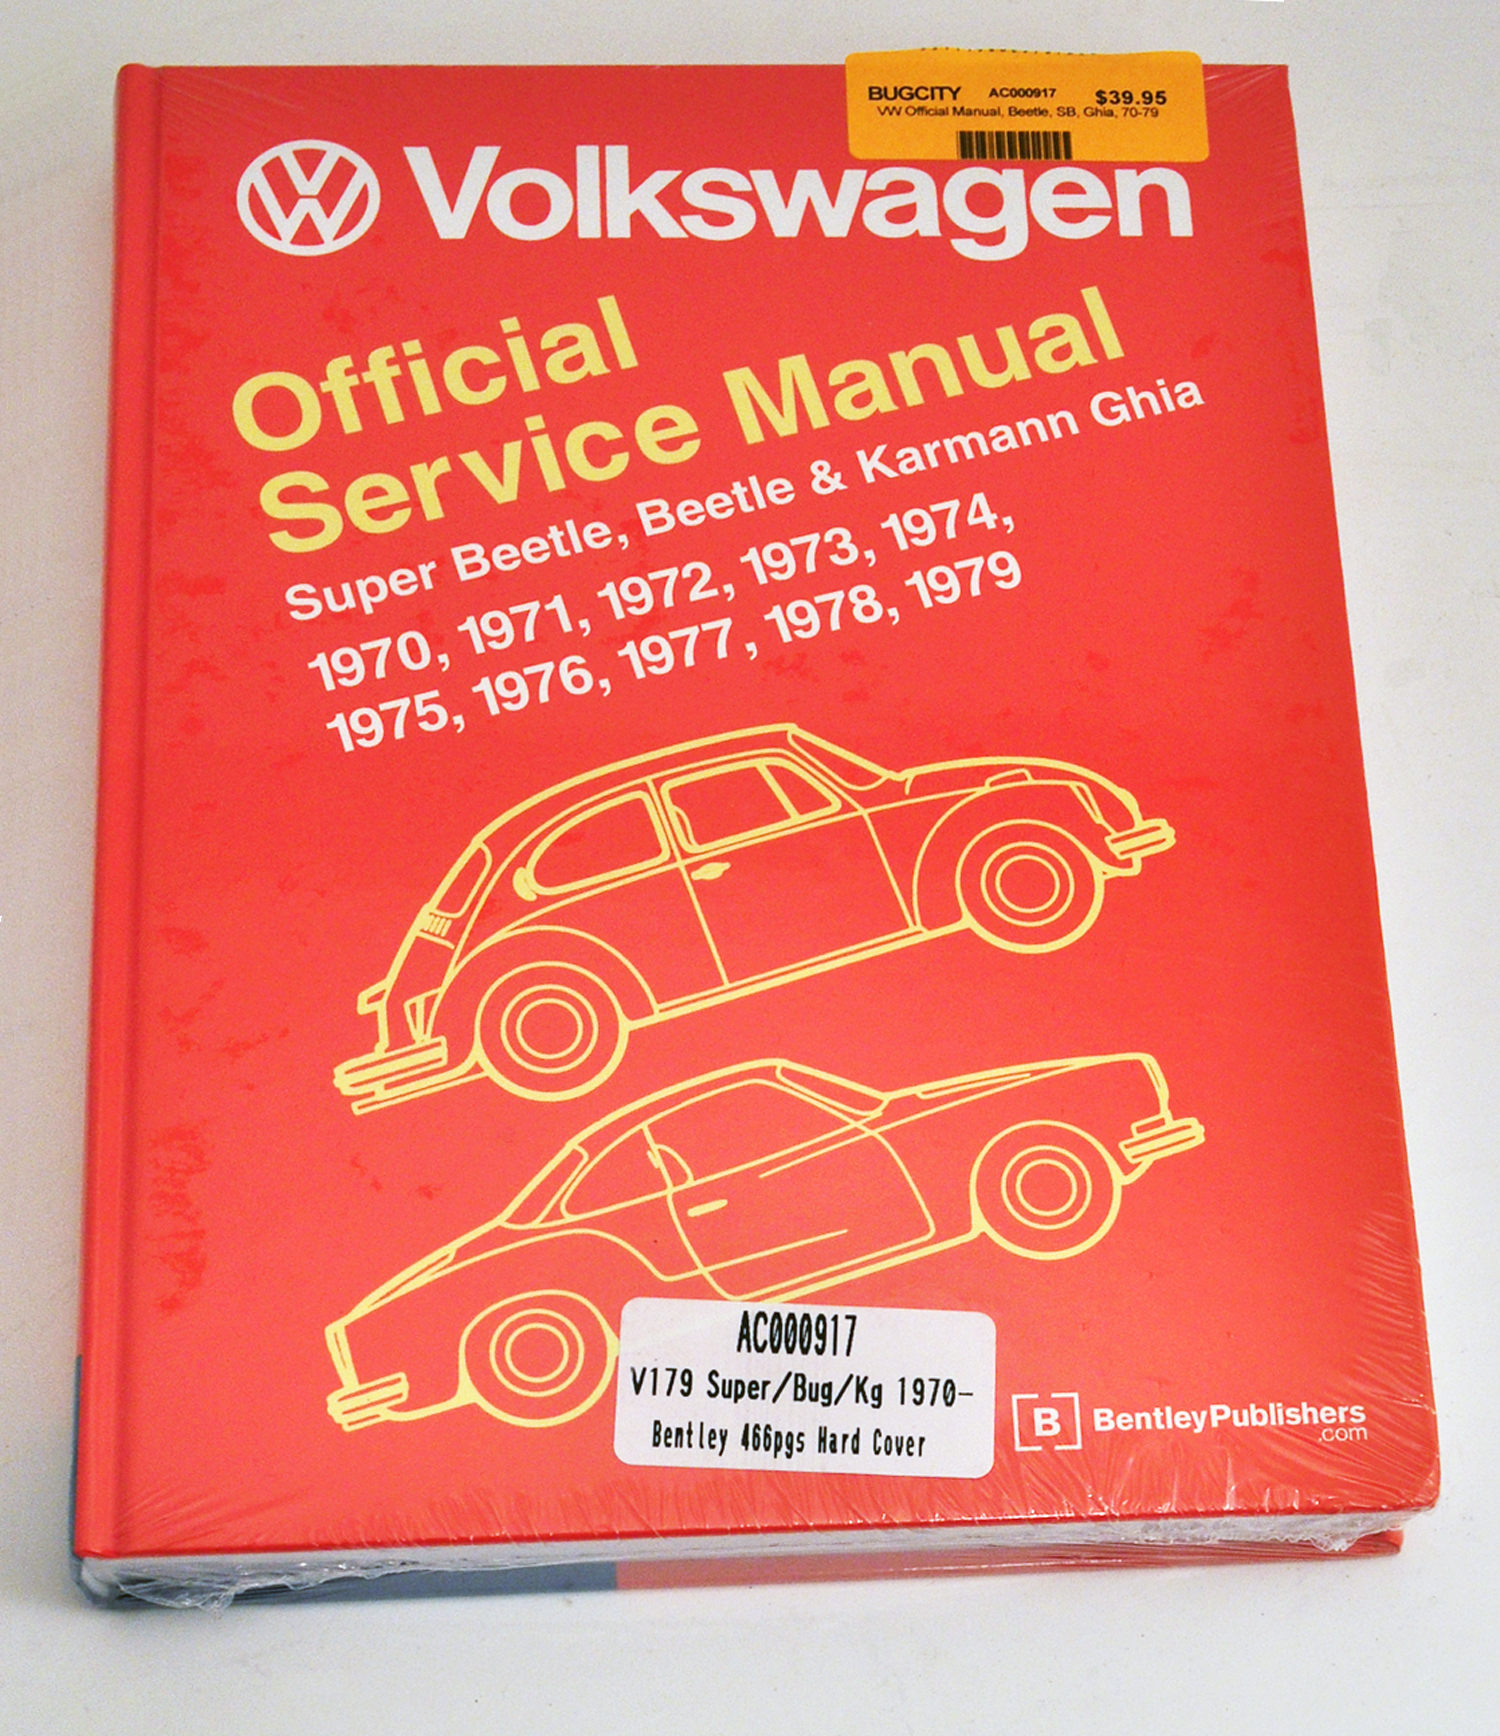 Bugcity Offers New And Used Air Cooled Parts For Your Vw Volkswagen 1971 Super Beetle Auto Shift Wire Diagram Repair Guide Official Manual Sb Ghia 70 79